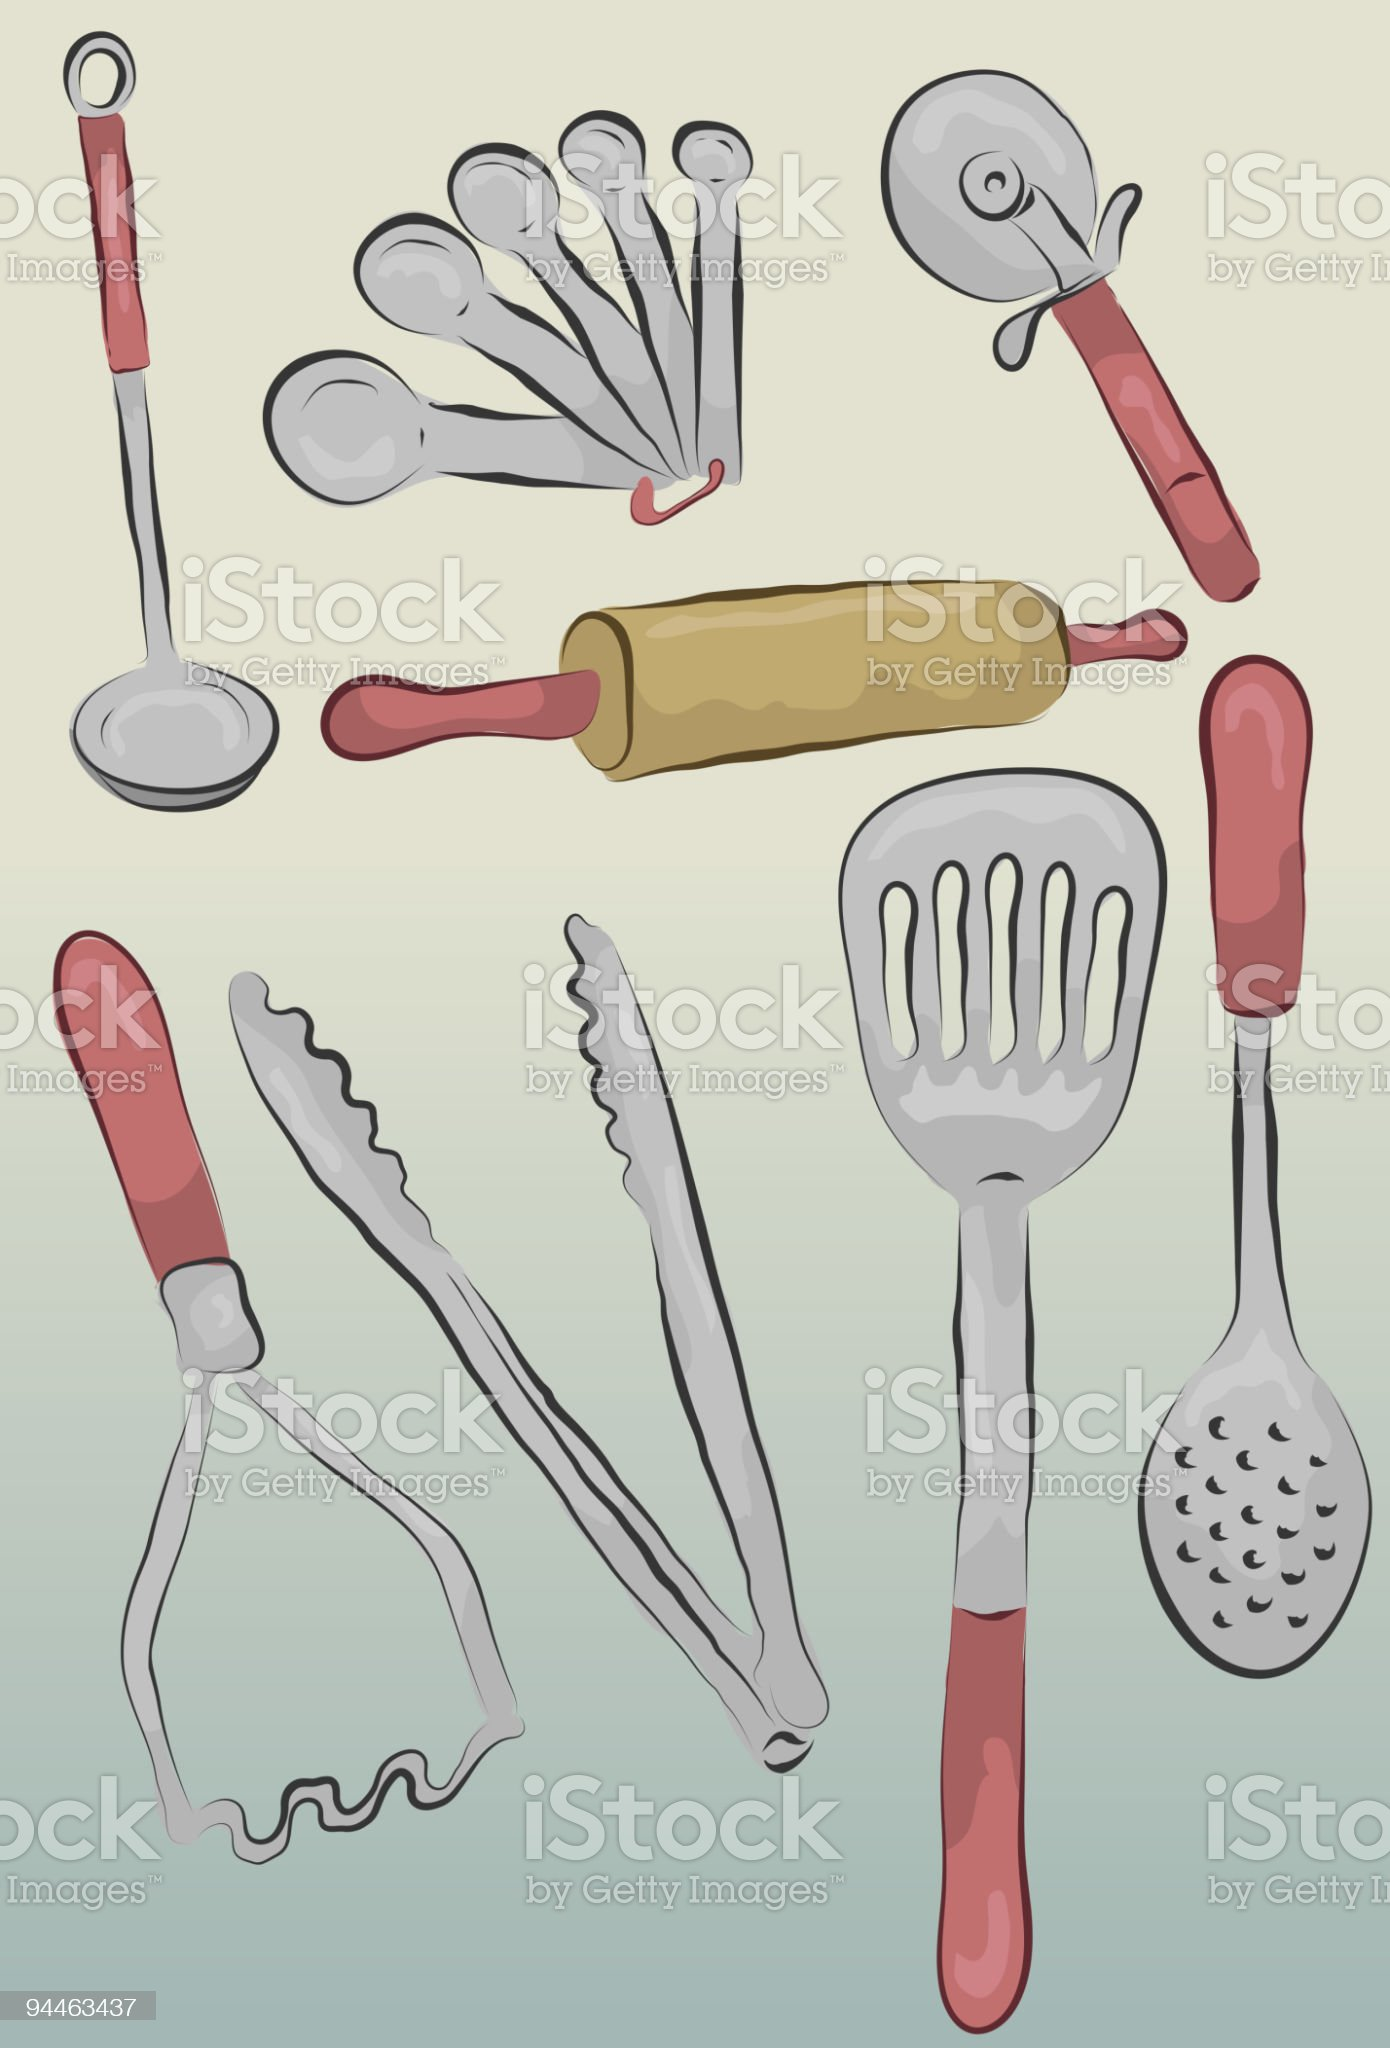 Messy hand drawn kitchen items royalty-free stock vector art